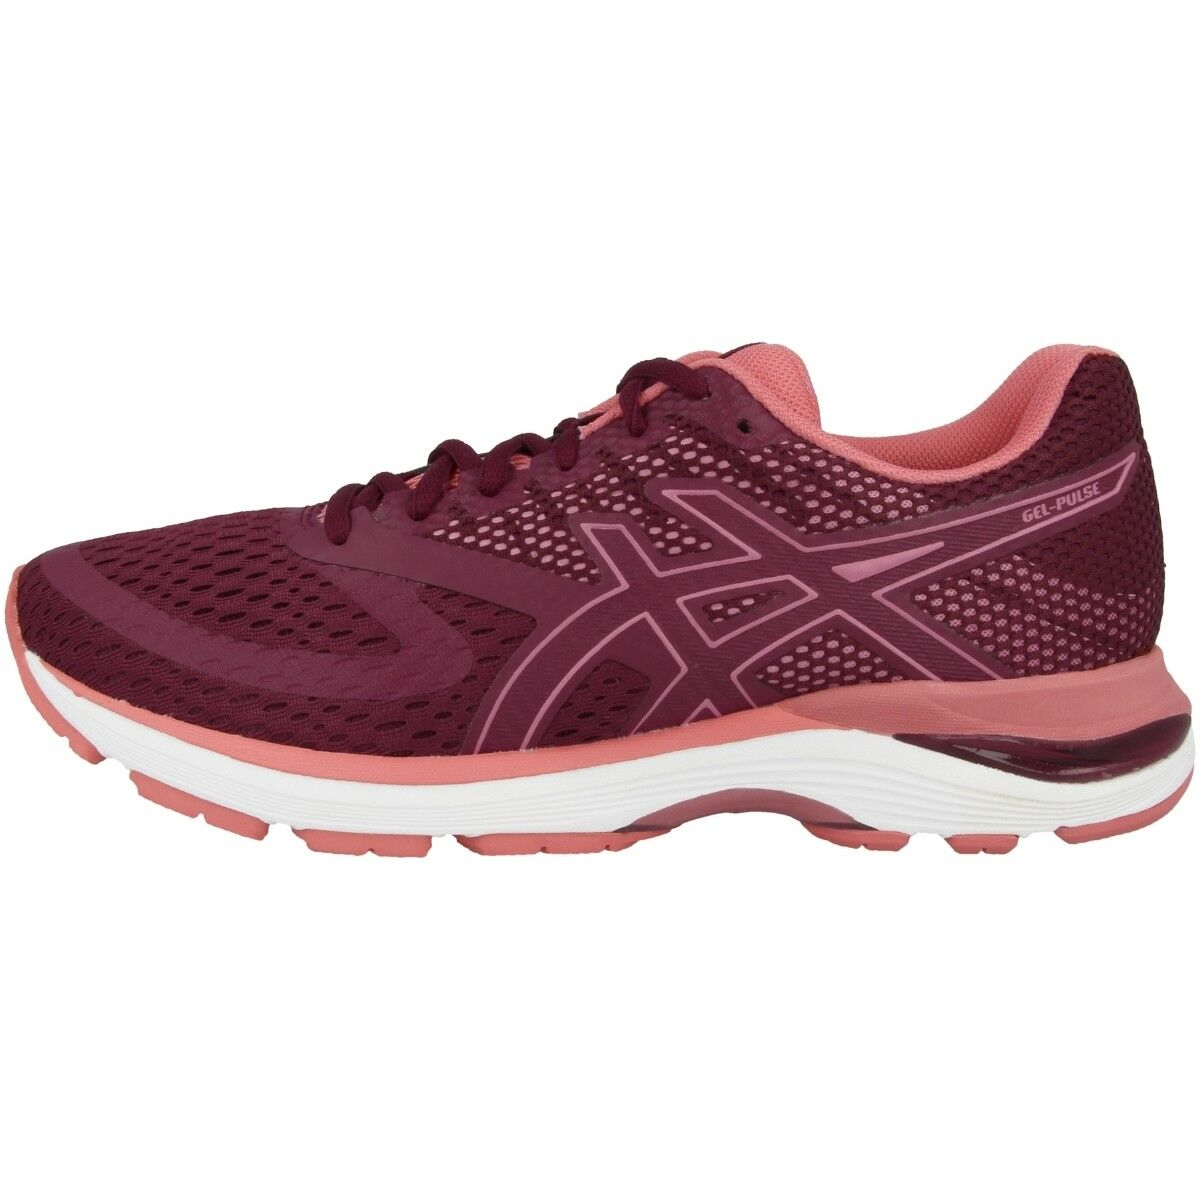 Asics Impulso 10 Women shoes Tempo Libero women Running shoes  1012A010-600  up to 42% off